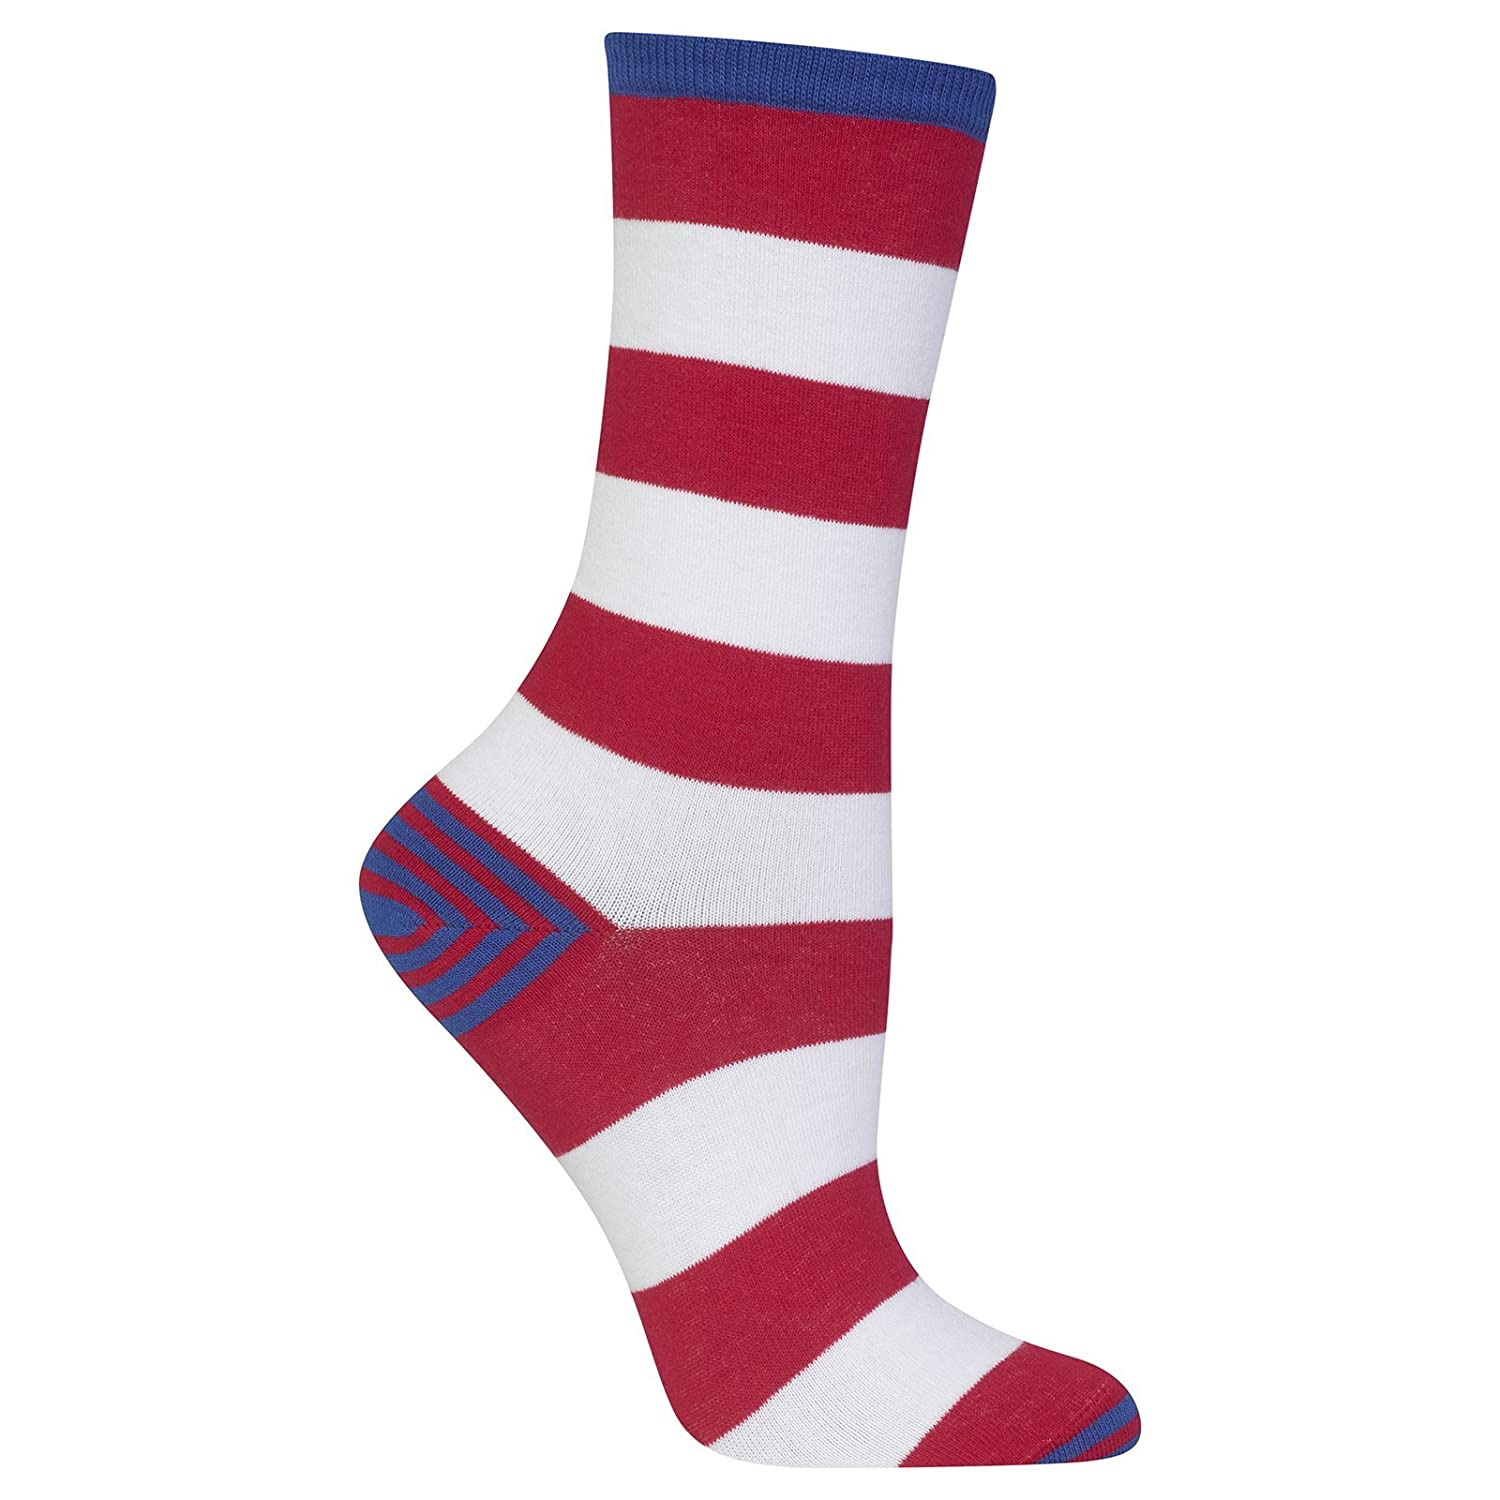 Hot Sox Women's Rugby with Striped Heel and Toe Sock